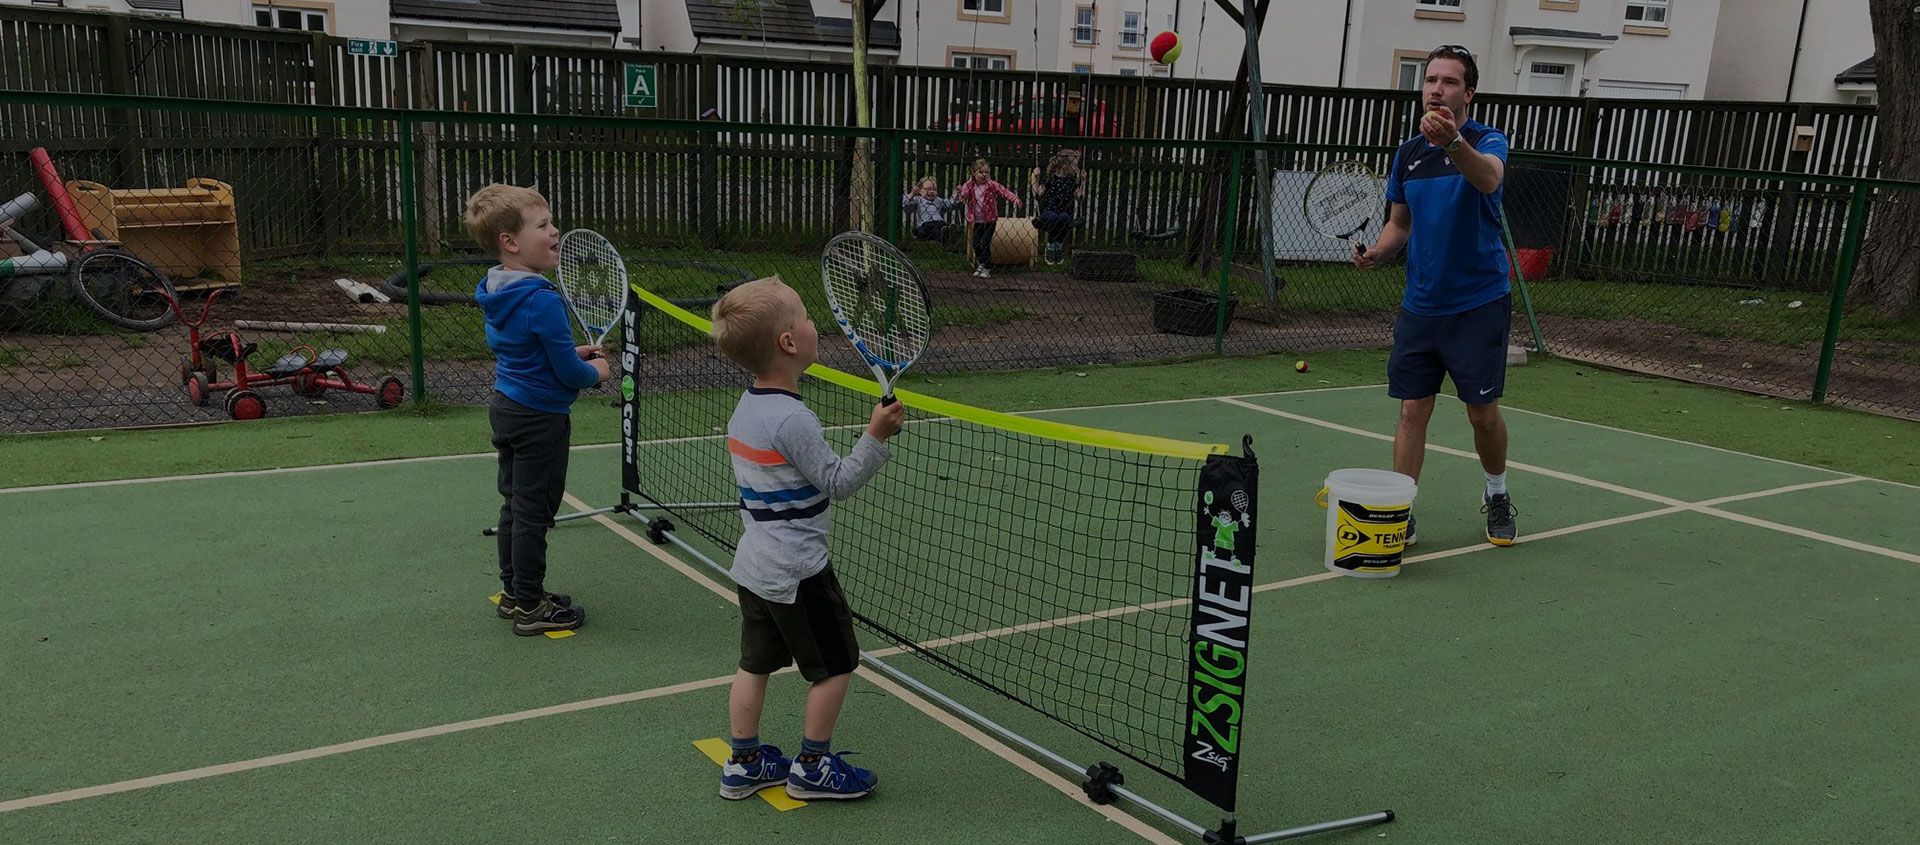 Nursery Tennis - now available at Pinocchio's (currently suspended)